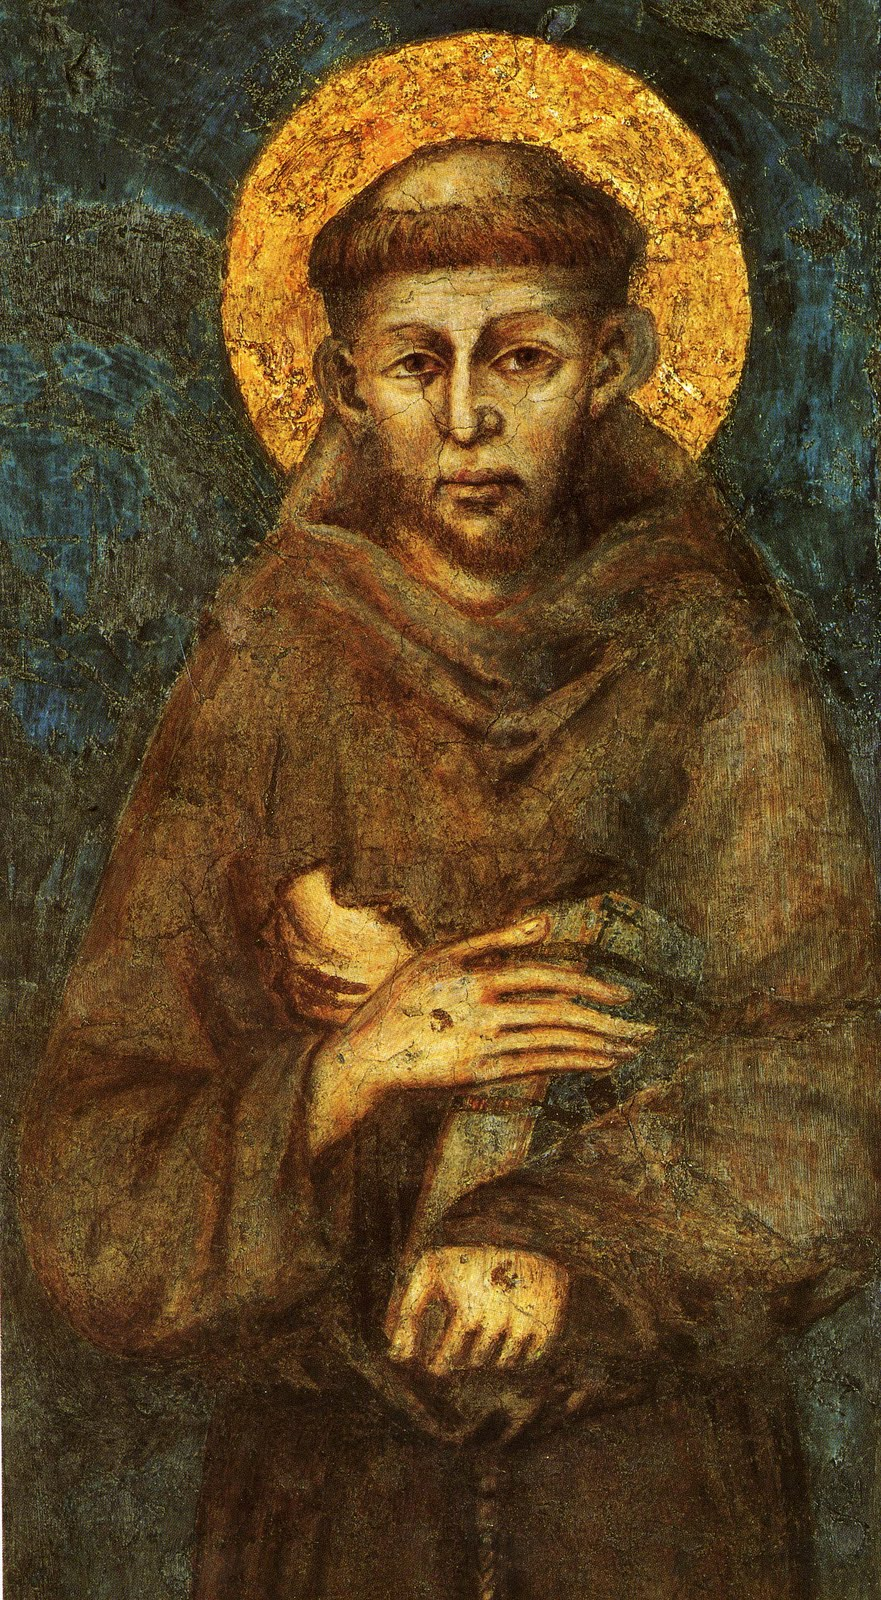 http://uploads8.wikipaintings.org/images/cimabue/saint-francis-of-assisi-detail.jpg